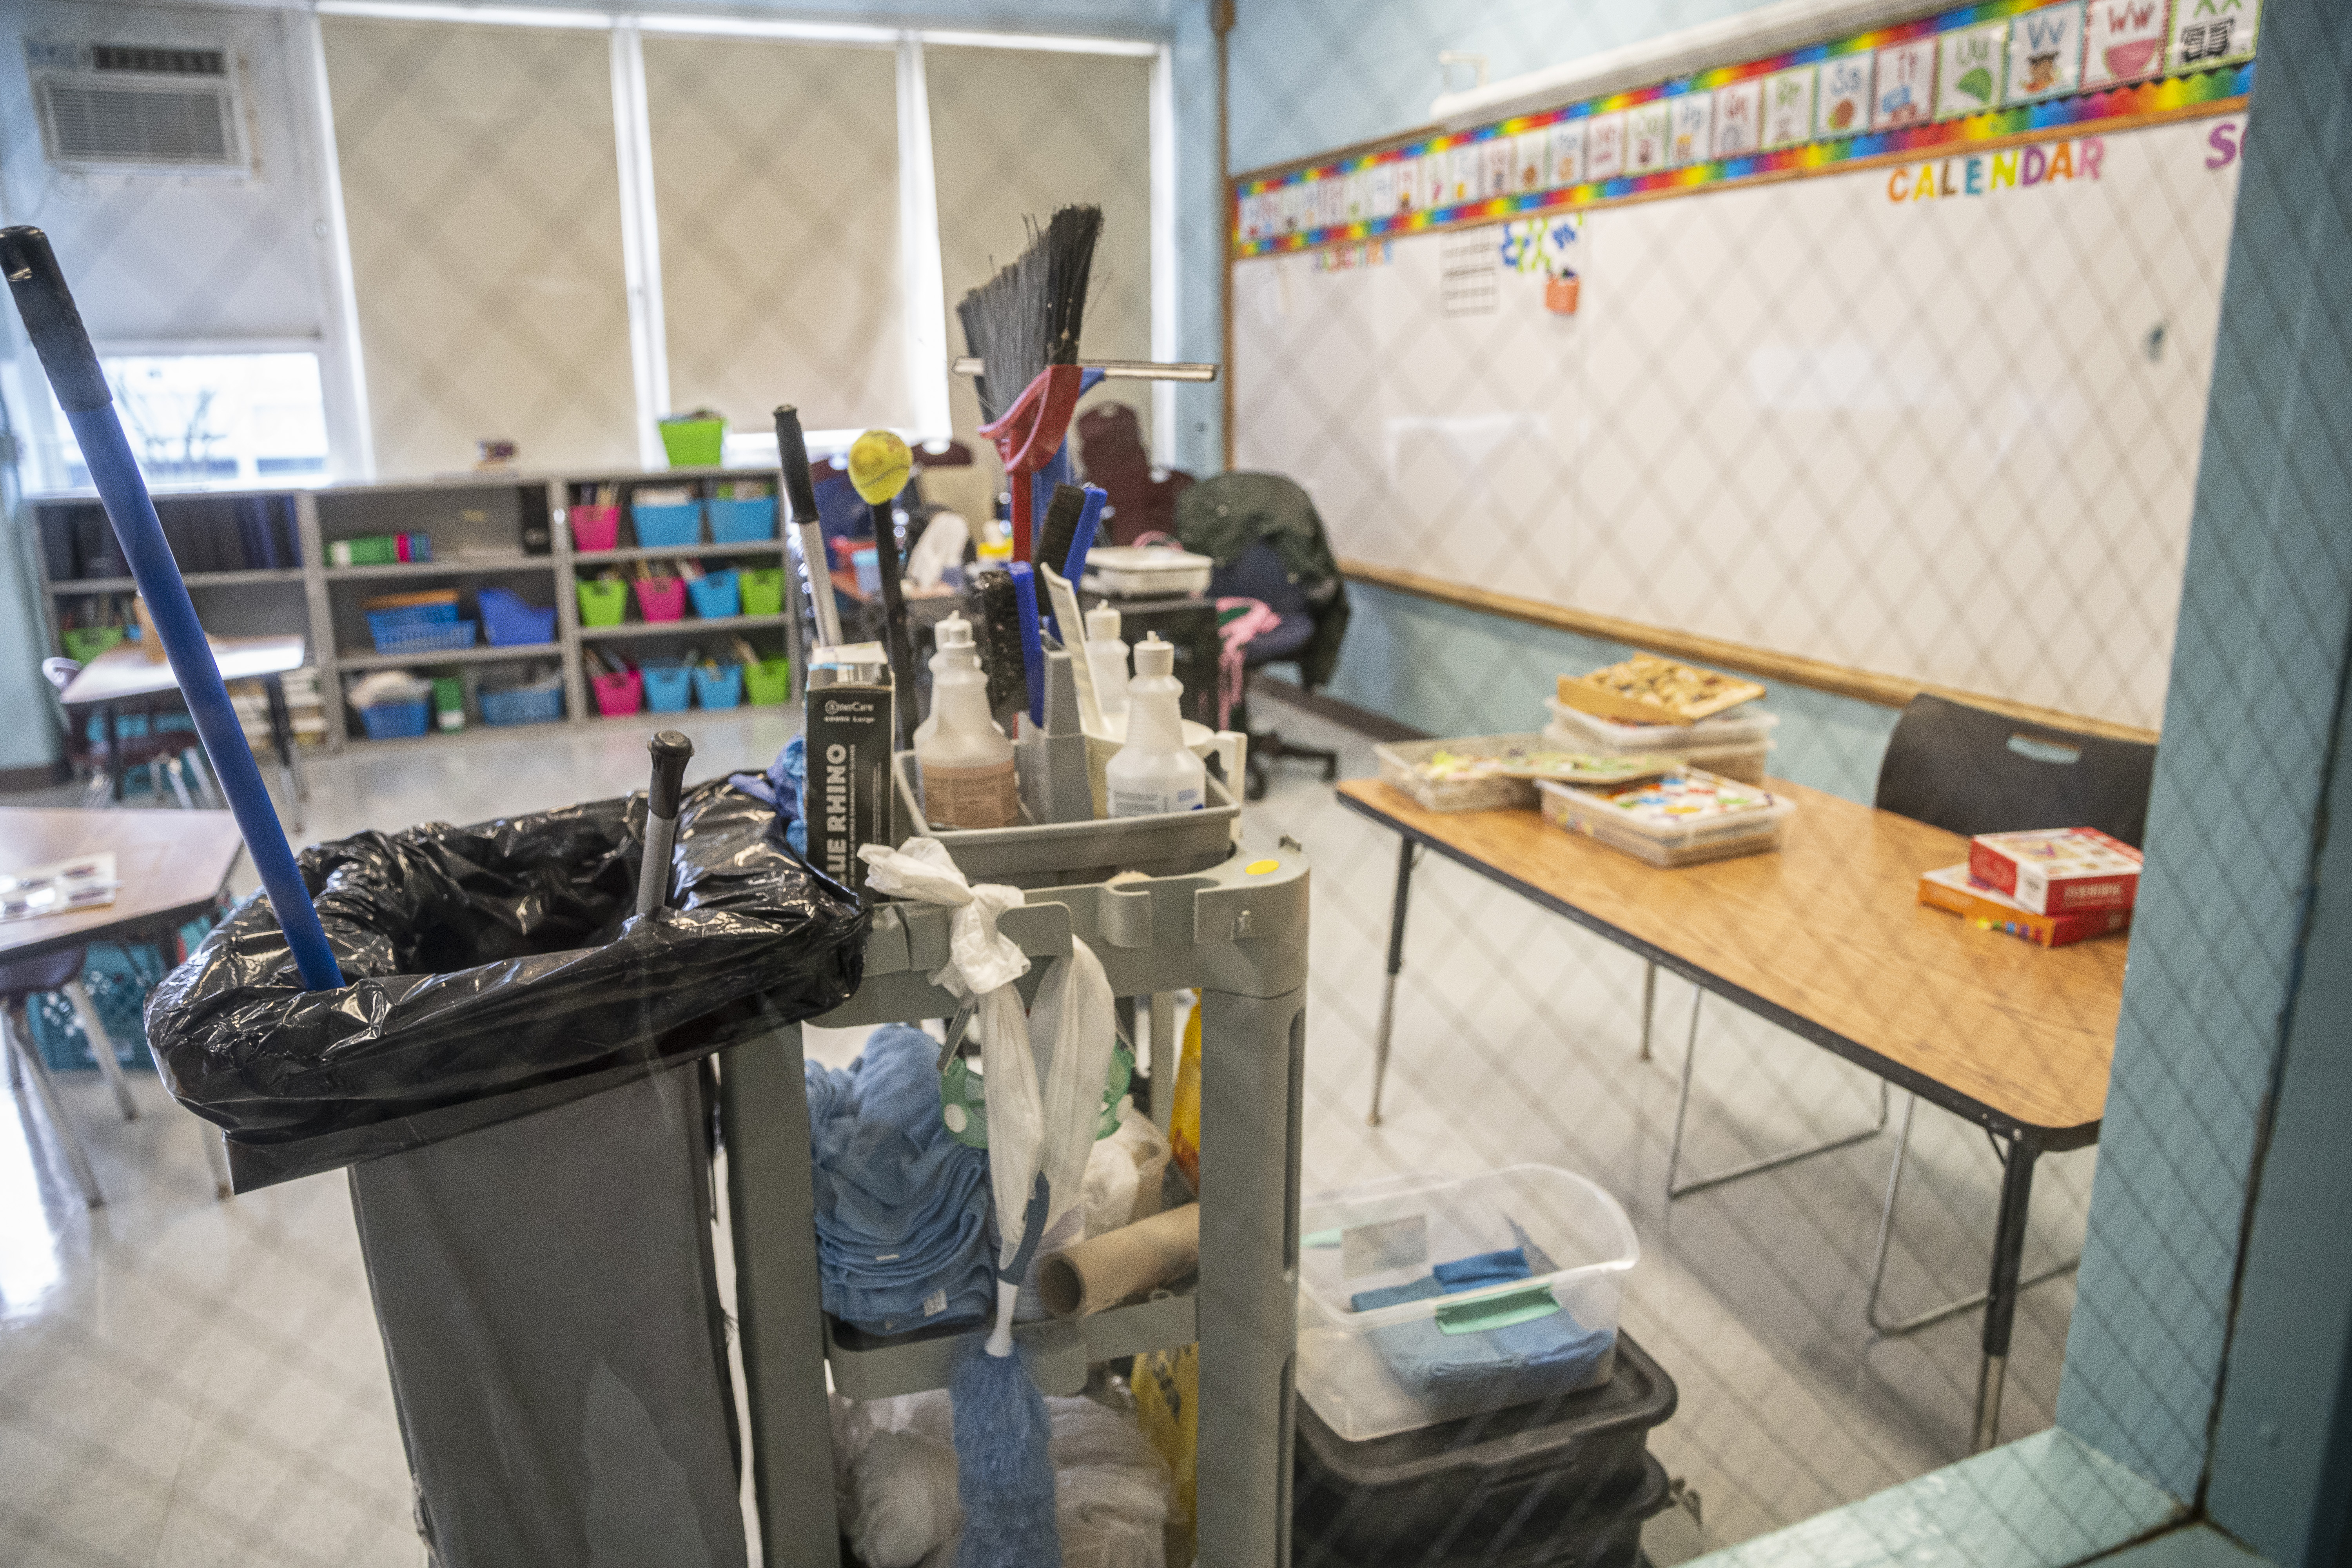 A classroom is being cleaned at South Shore Fine Arts Academy at 1415 E 70th St in South Shore , Wednesday, Jan. 6, 2021.